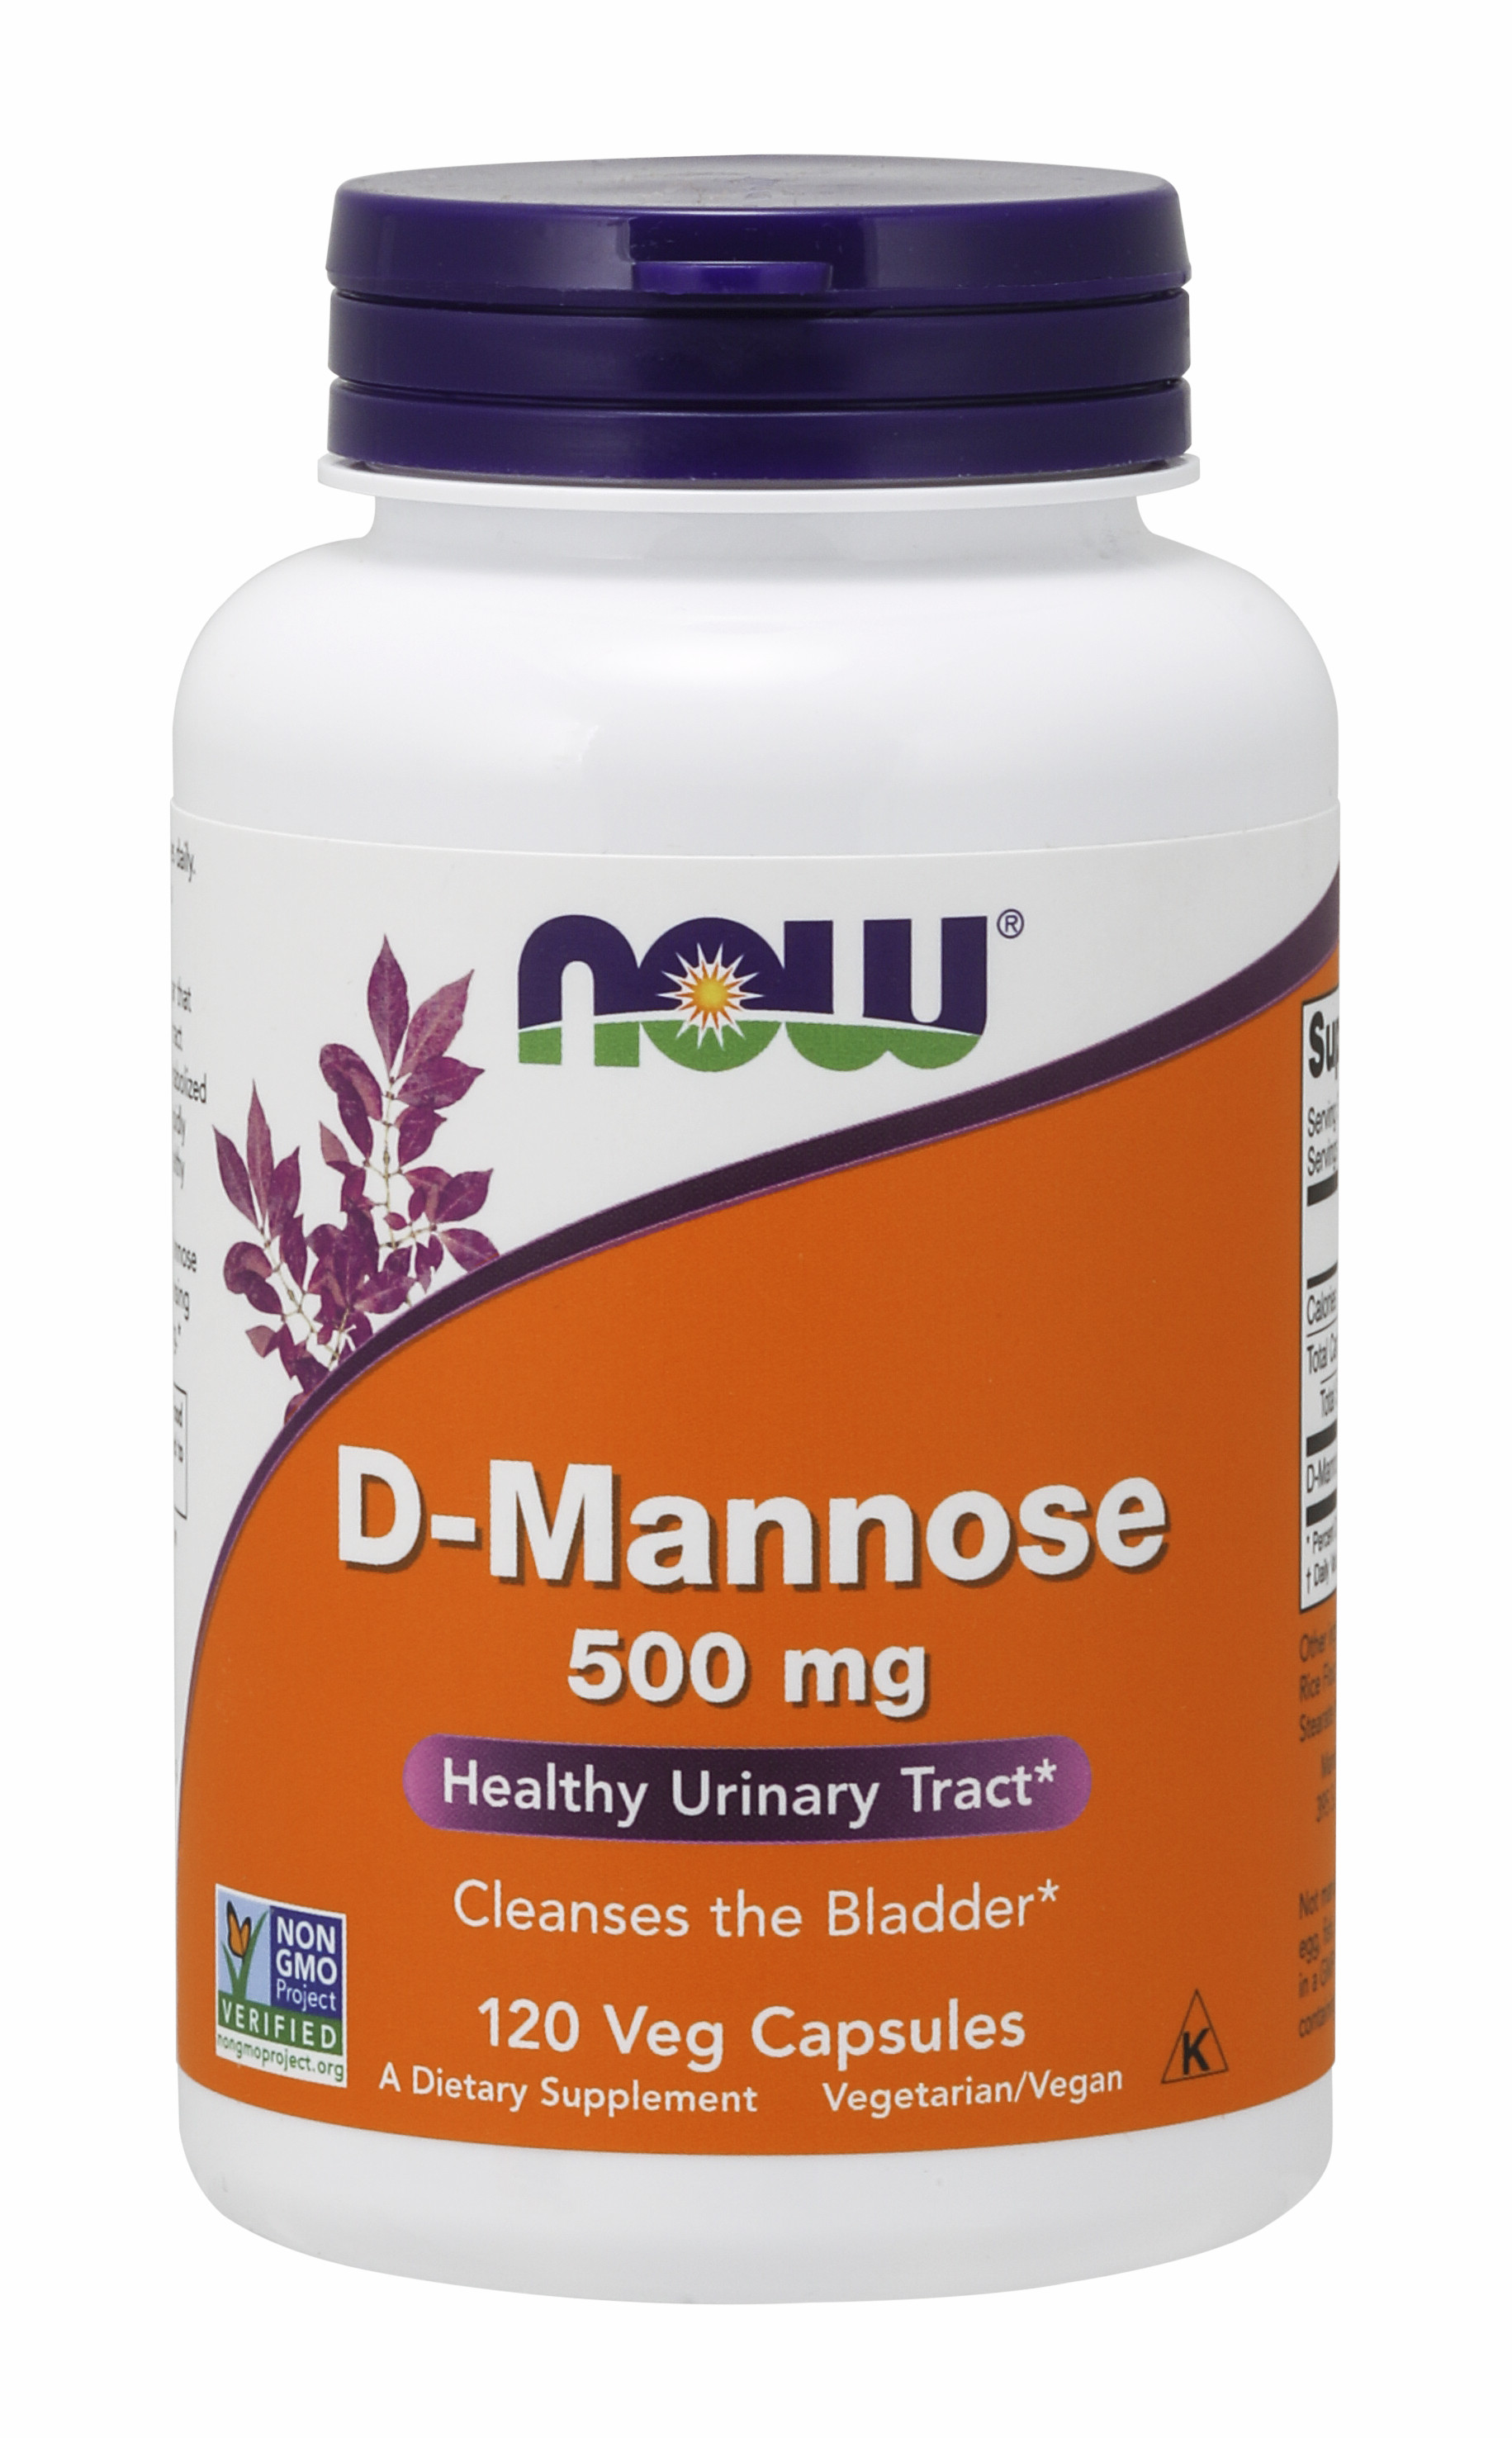 NOW Supplements, Certified Non-GMO, D-Mannose 500 mg, 120 Veg Capsules